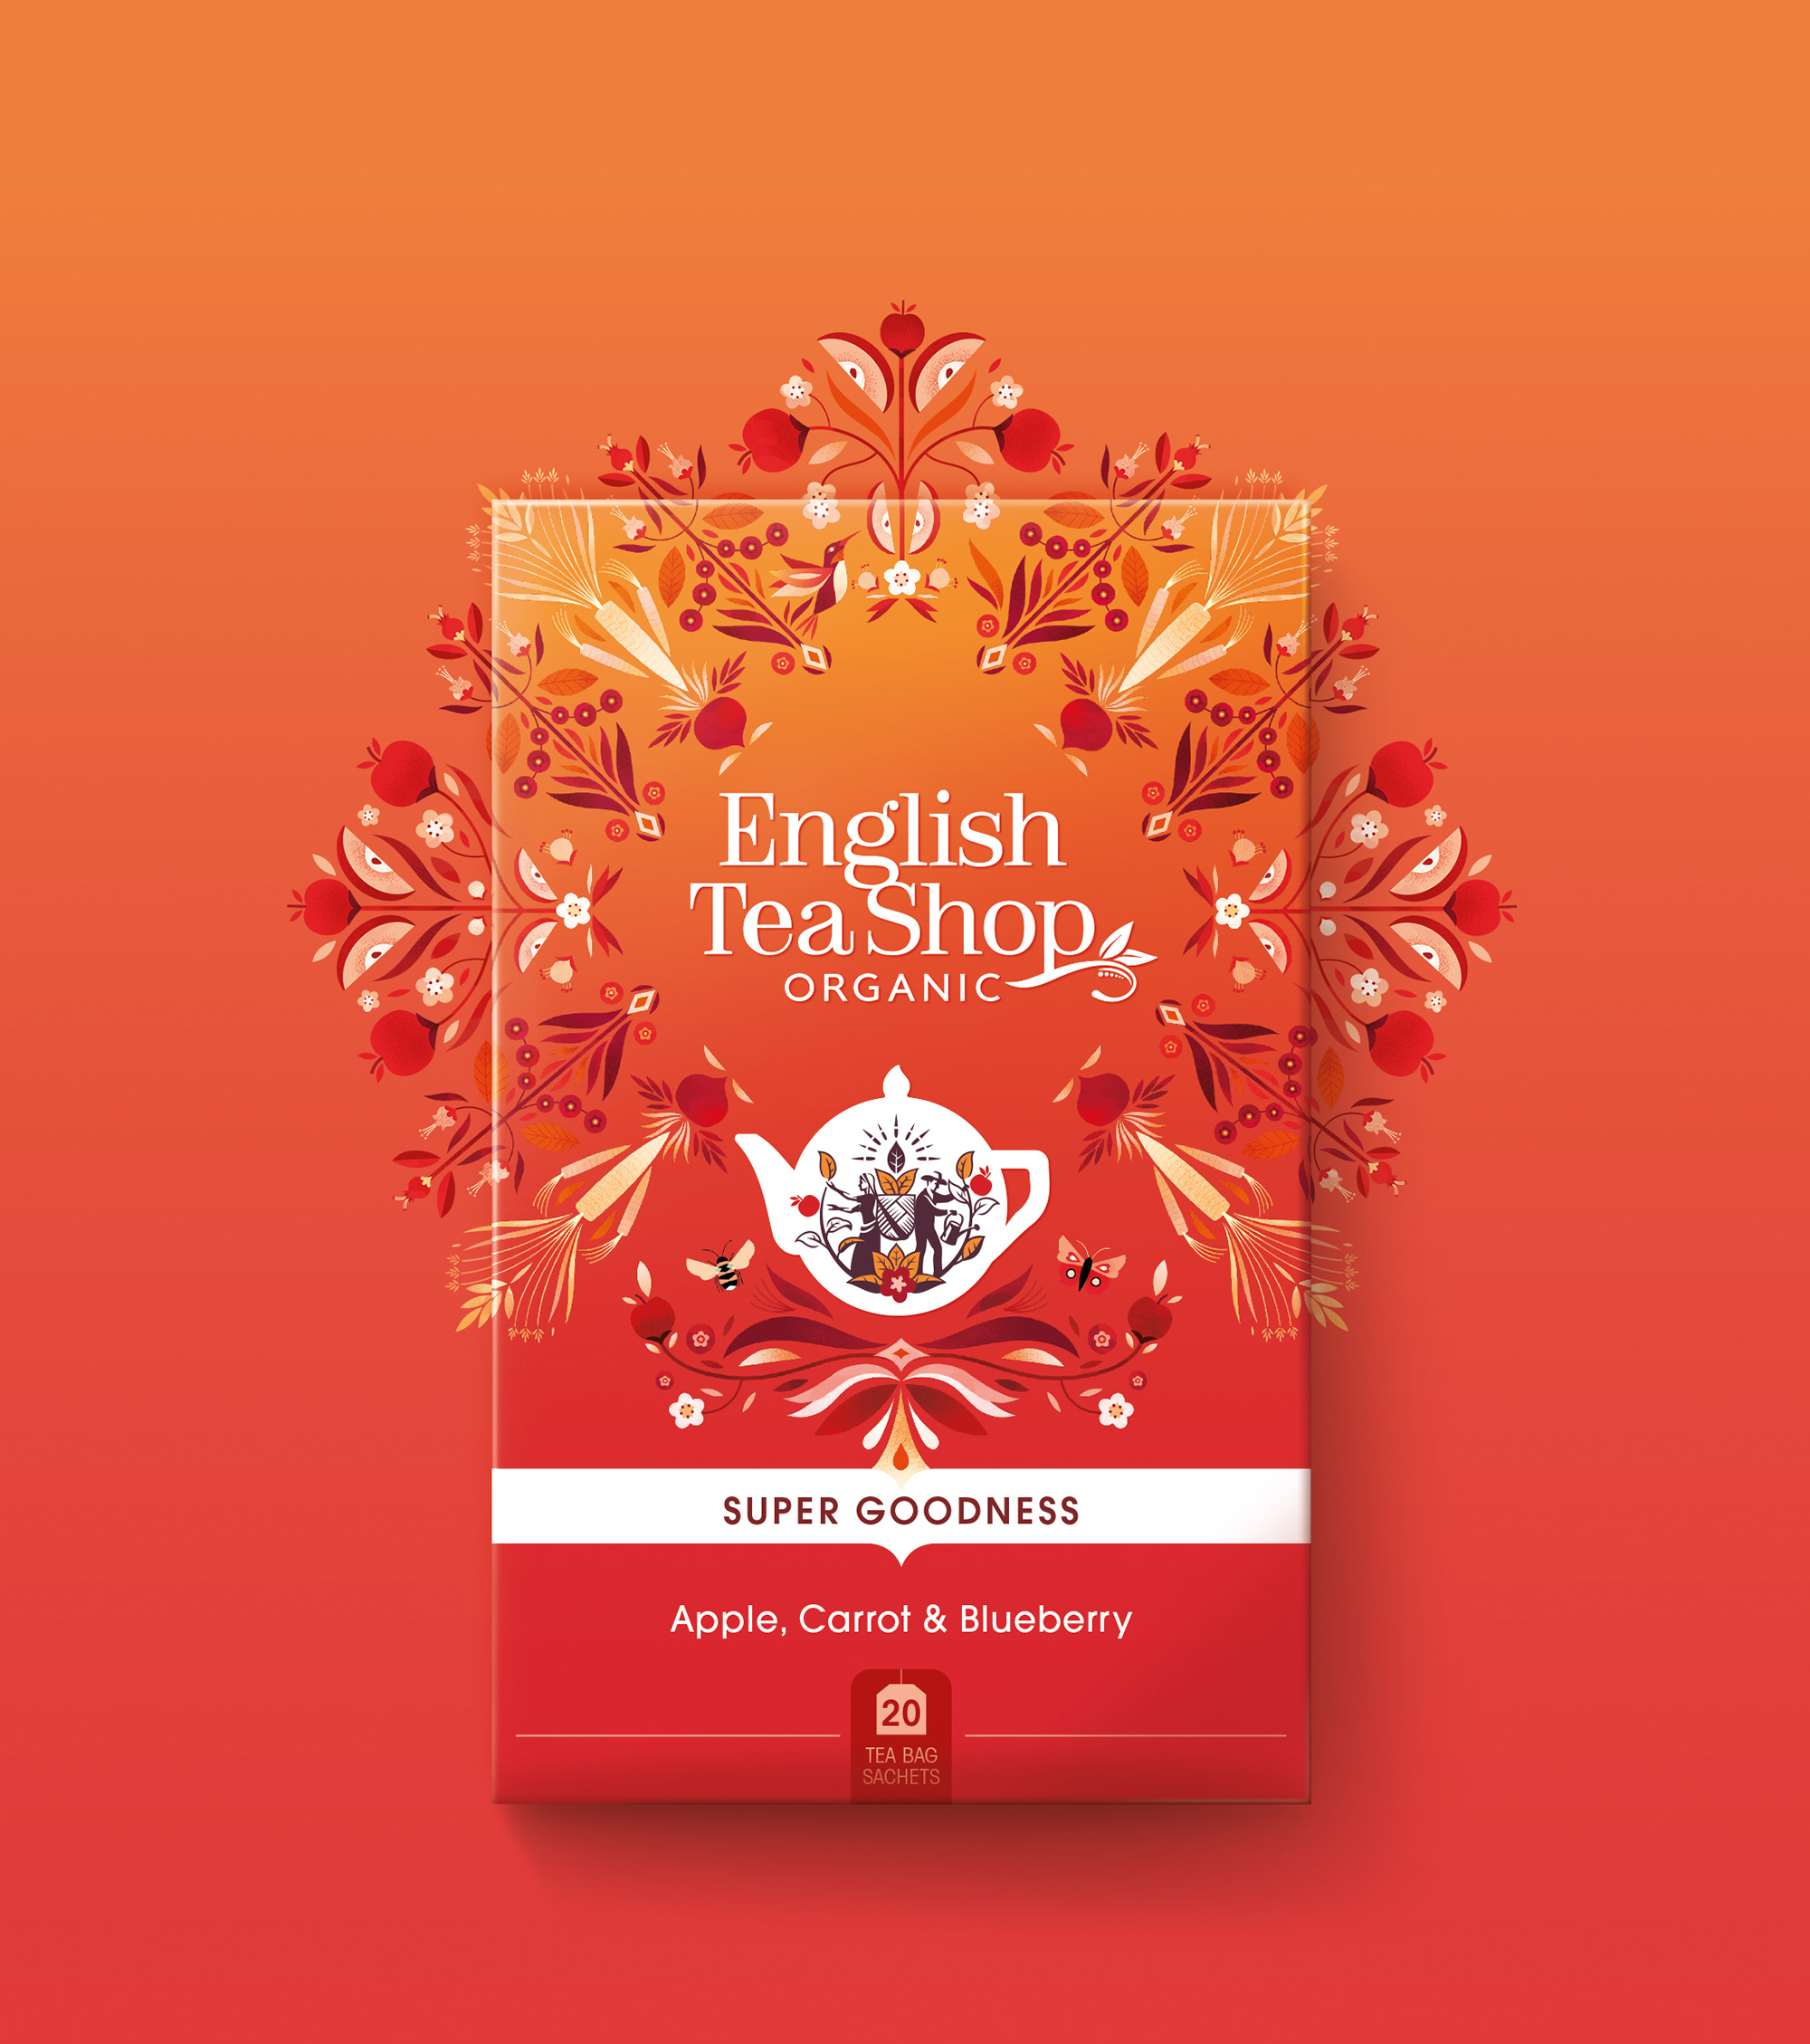 New Logo and Packaging for English Tea Shop by Echo